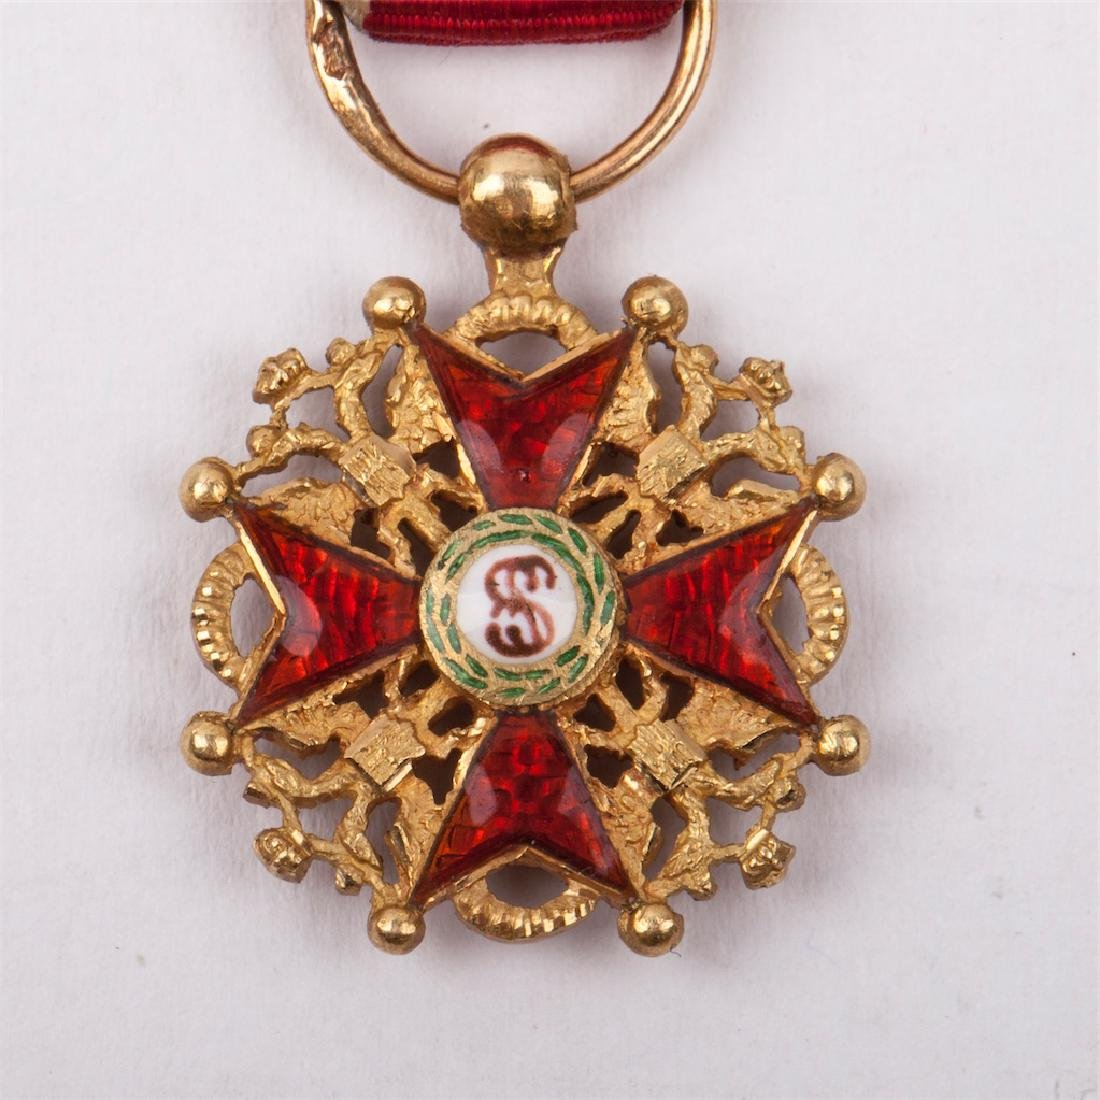 Miniature Imperial Order of St Stanislaus - 4